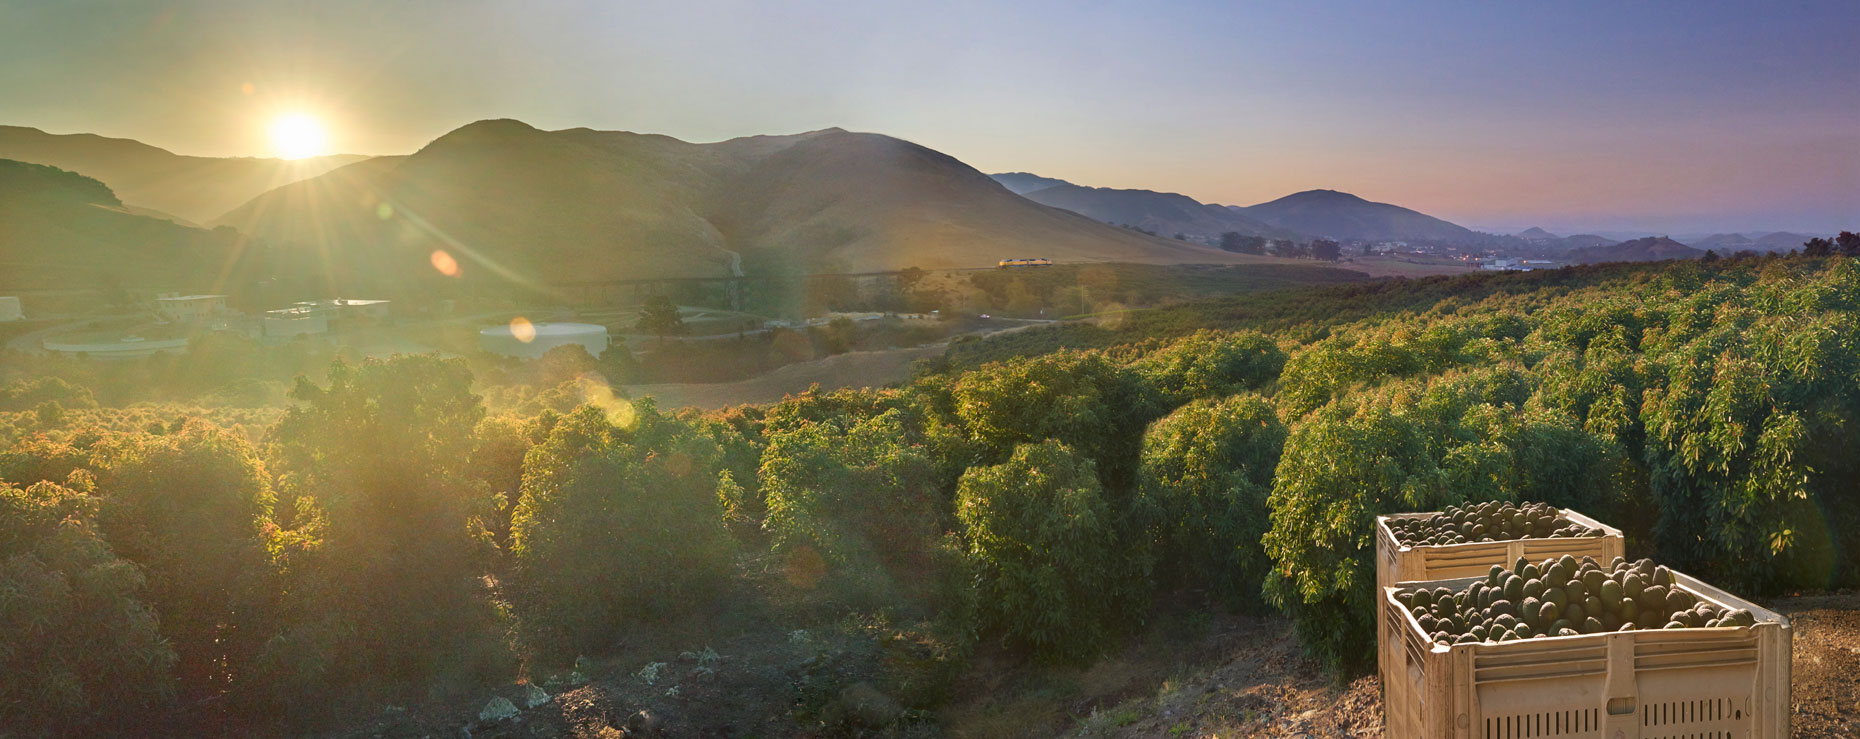 Avocado-orchard-with-picked-avocados-in-bins-at-sunrise-central-coast-of-California-by-Los-Angeles-farmland-photographer-Joe-Atlas.